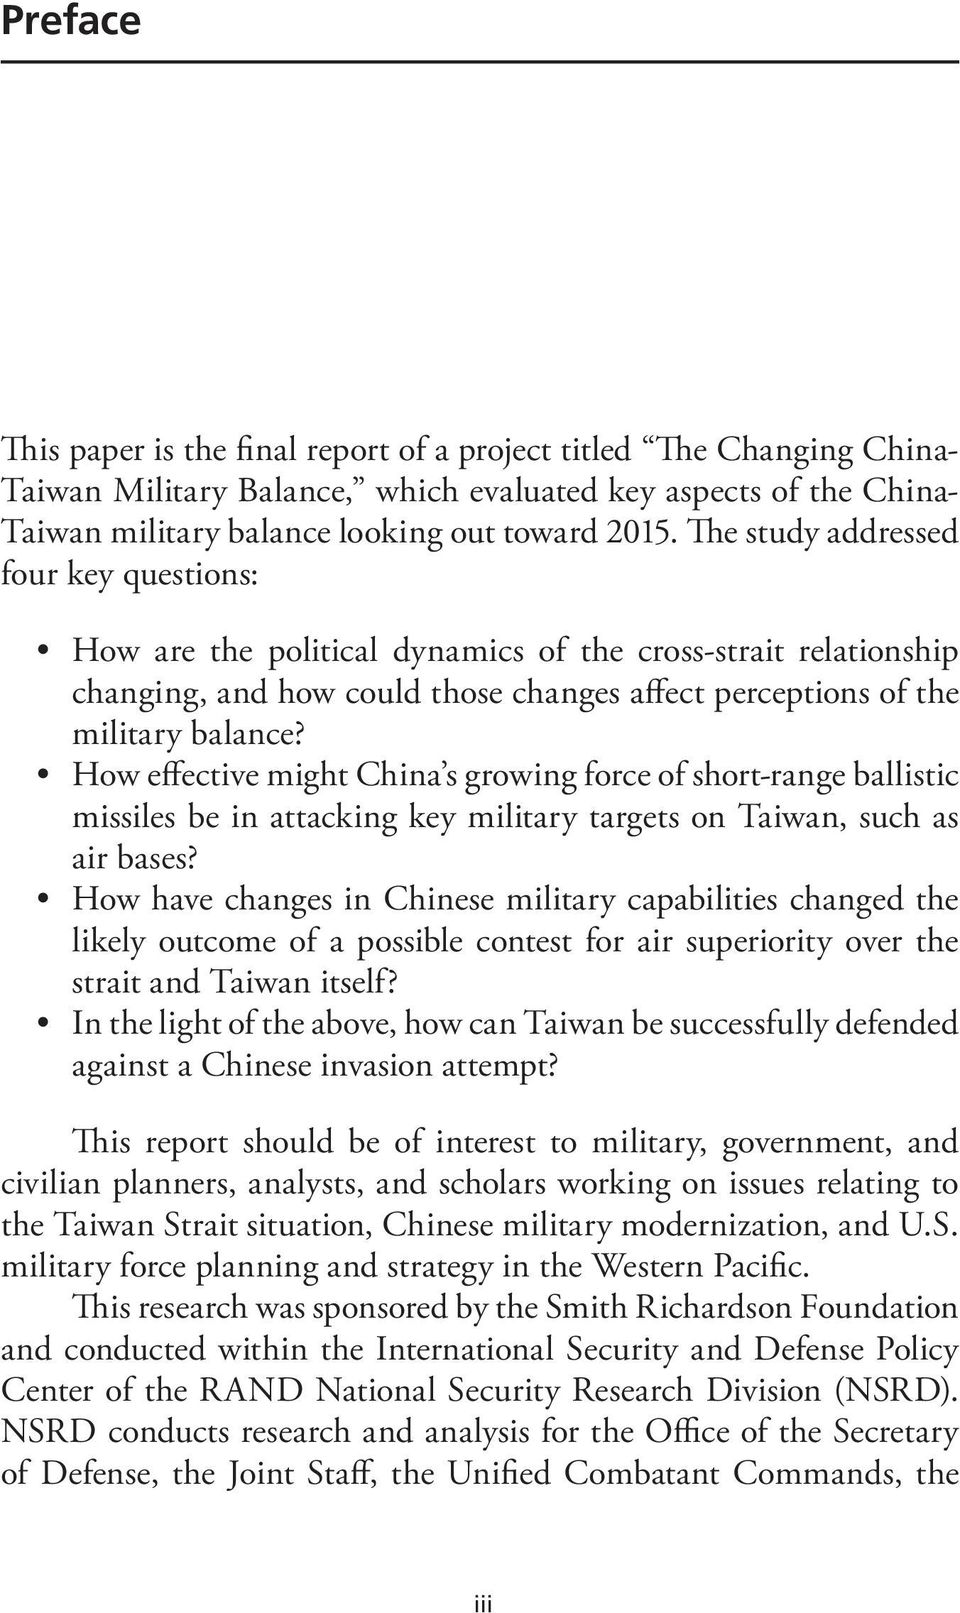 How effective might China s growing force of short-range ballistic missiles be in attacking key military targets on Taiwan, such as air bases?